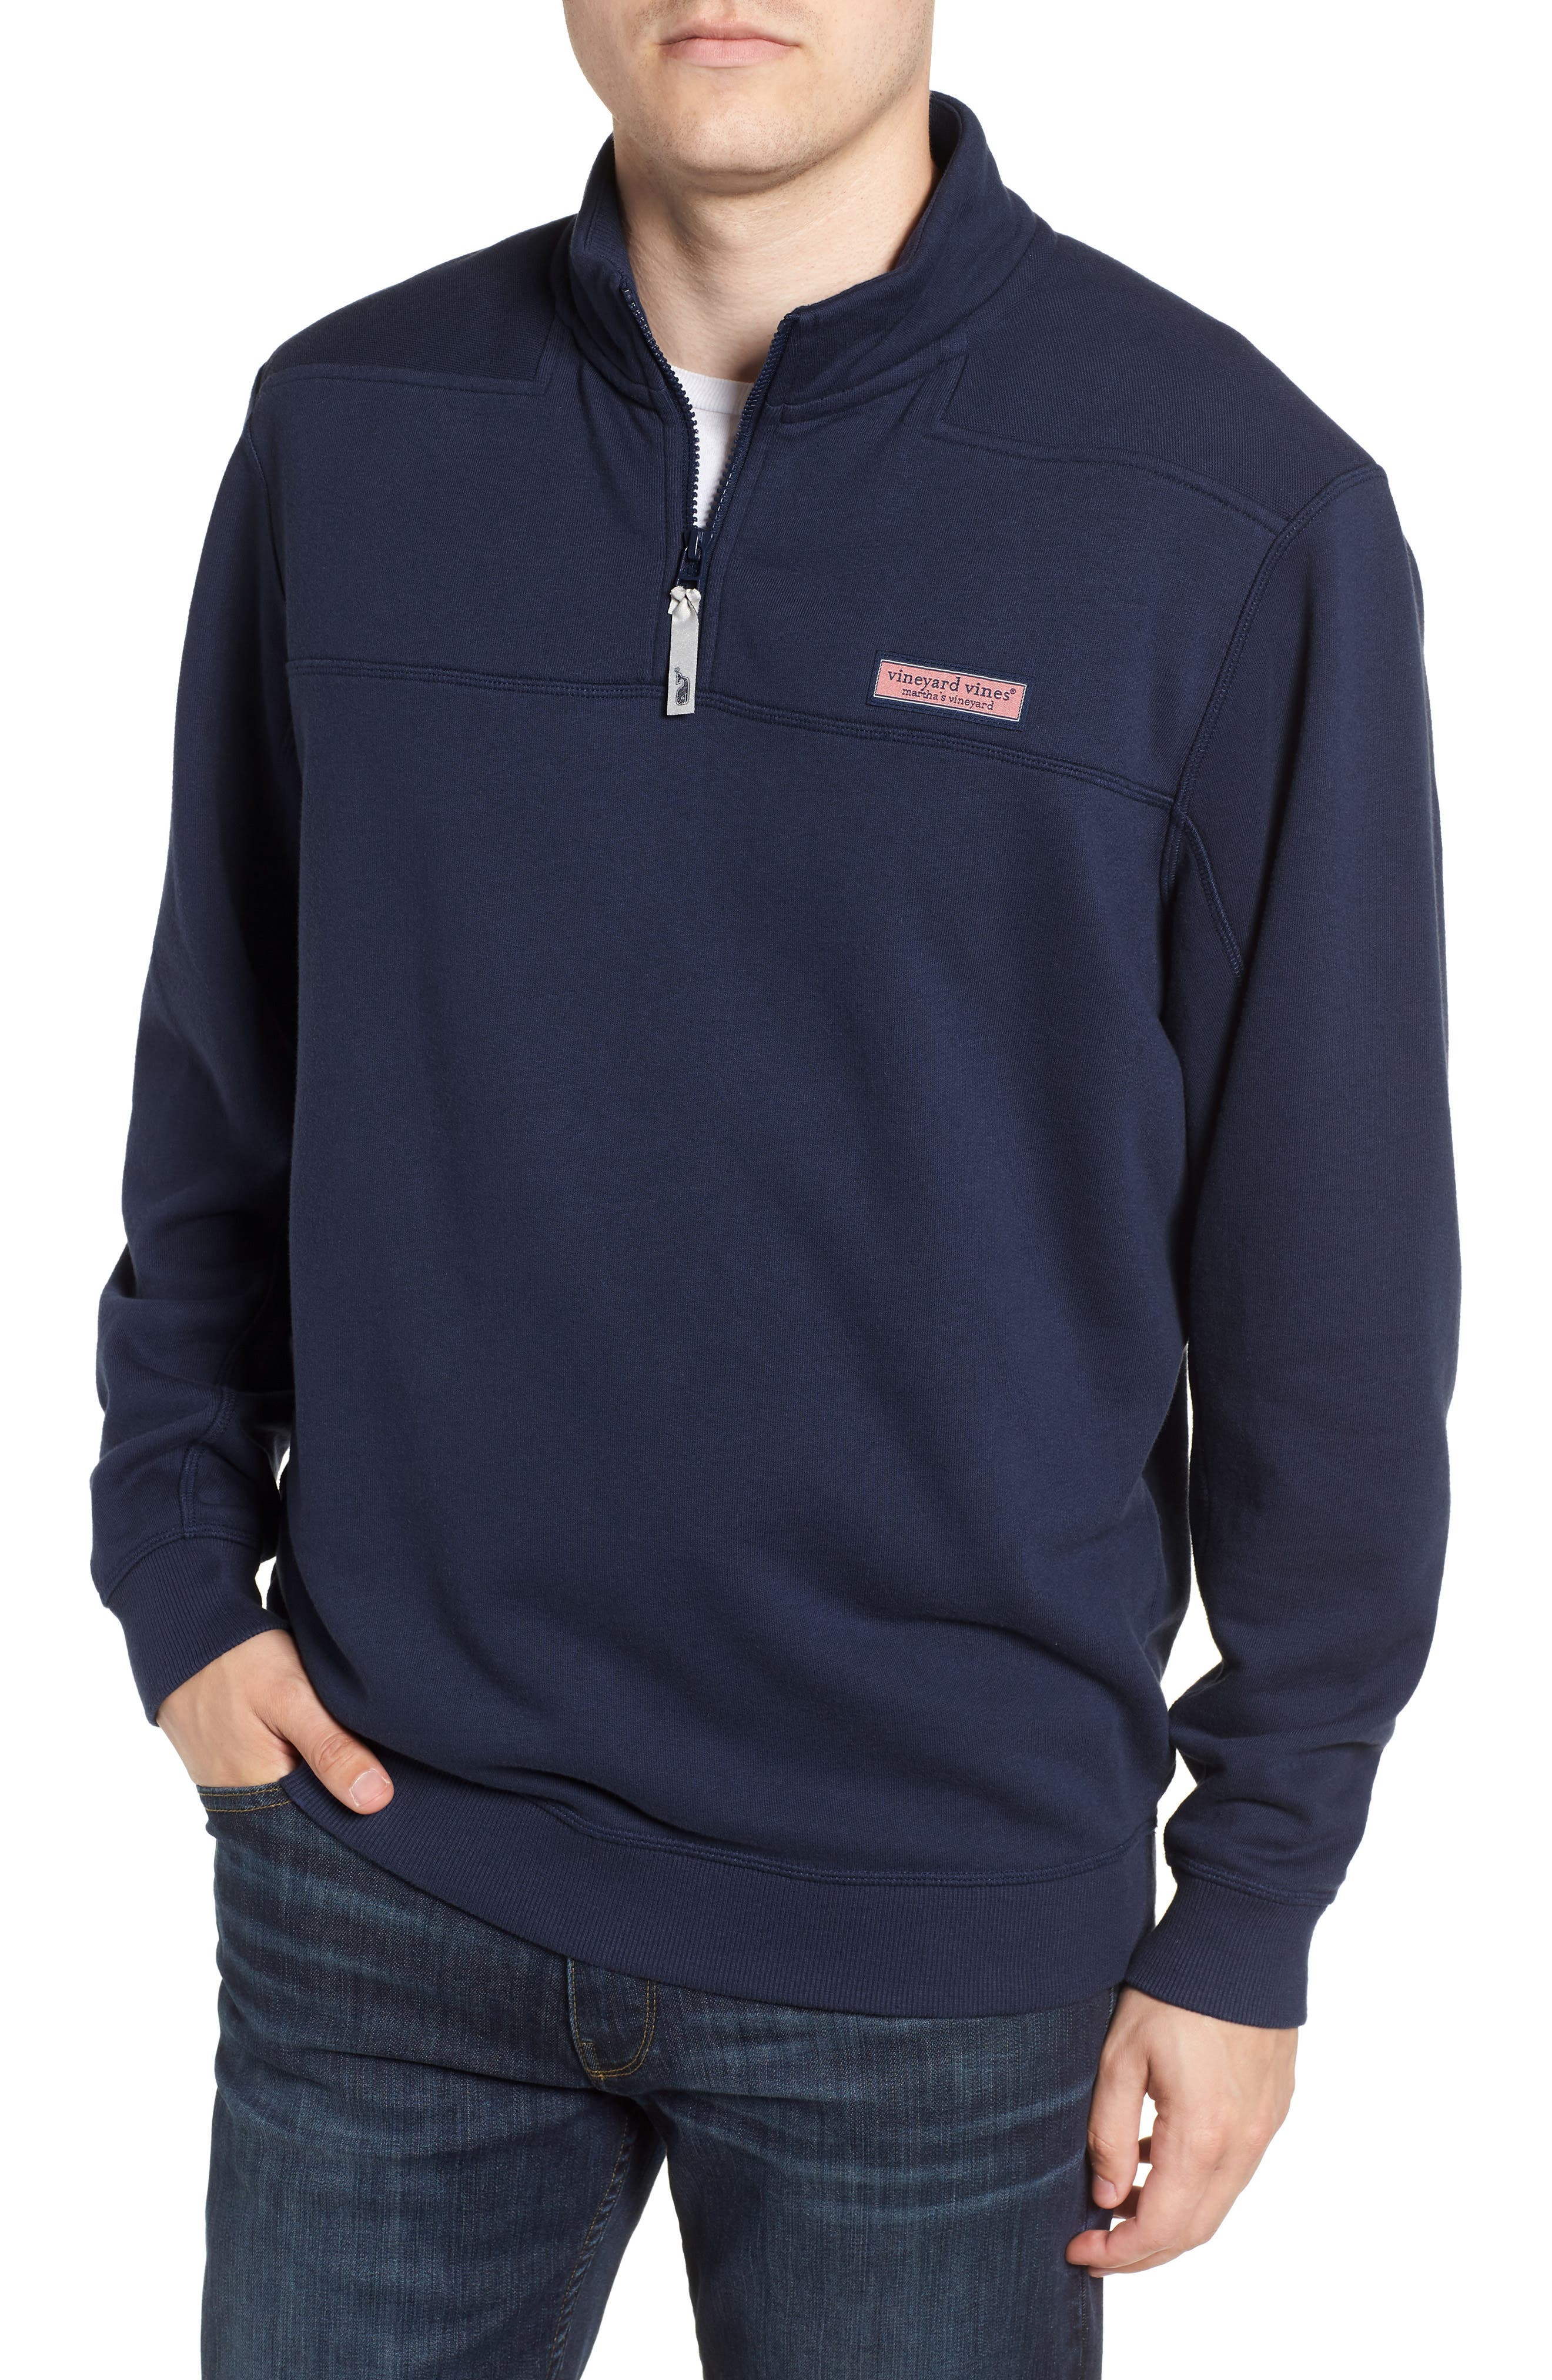 VINEYARD VINES, Collegiate Half Zip Pullover, Main thumbnail 1, color, VINEYARD NAVY